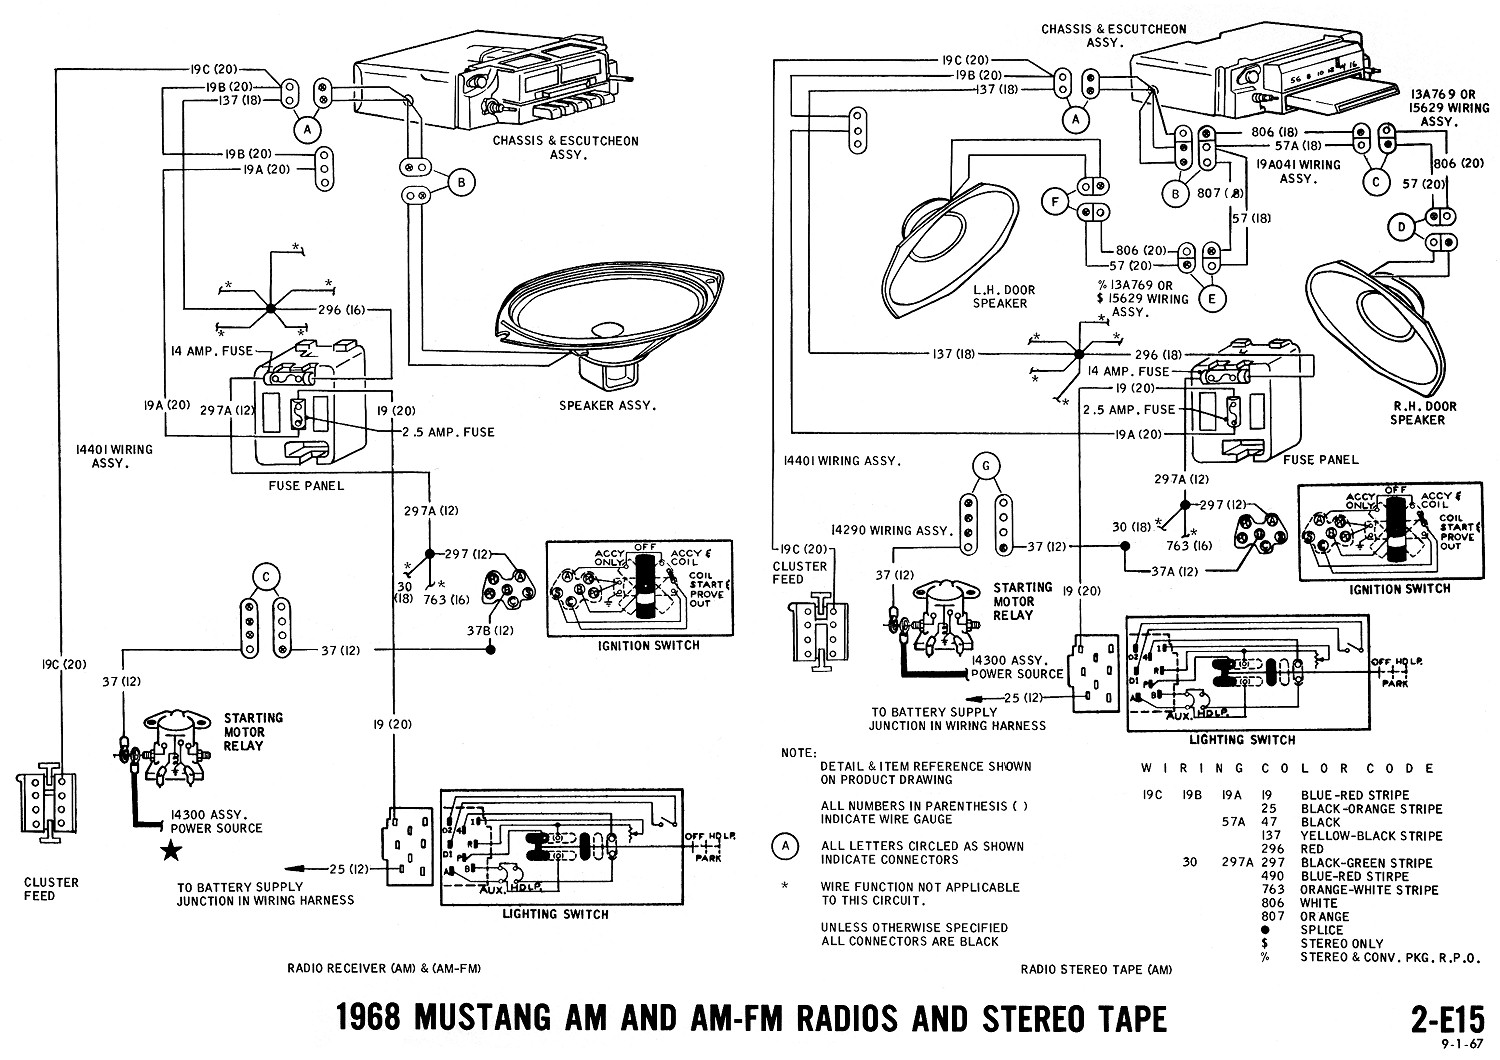 E15 66 mustang wiring diagram radio tape 66 mustang fuse diagram 1970 mustang radio wiring diagram at virtualis.co